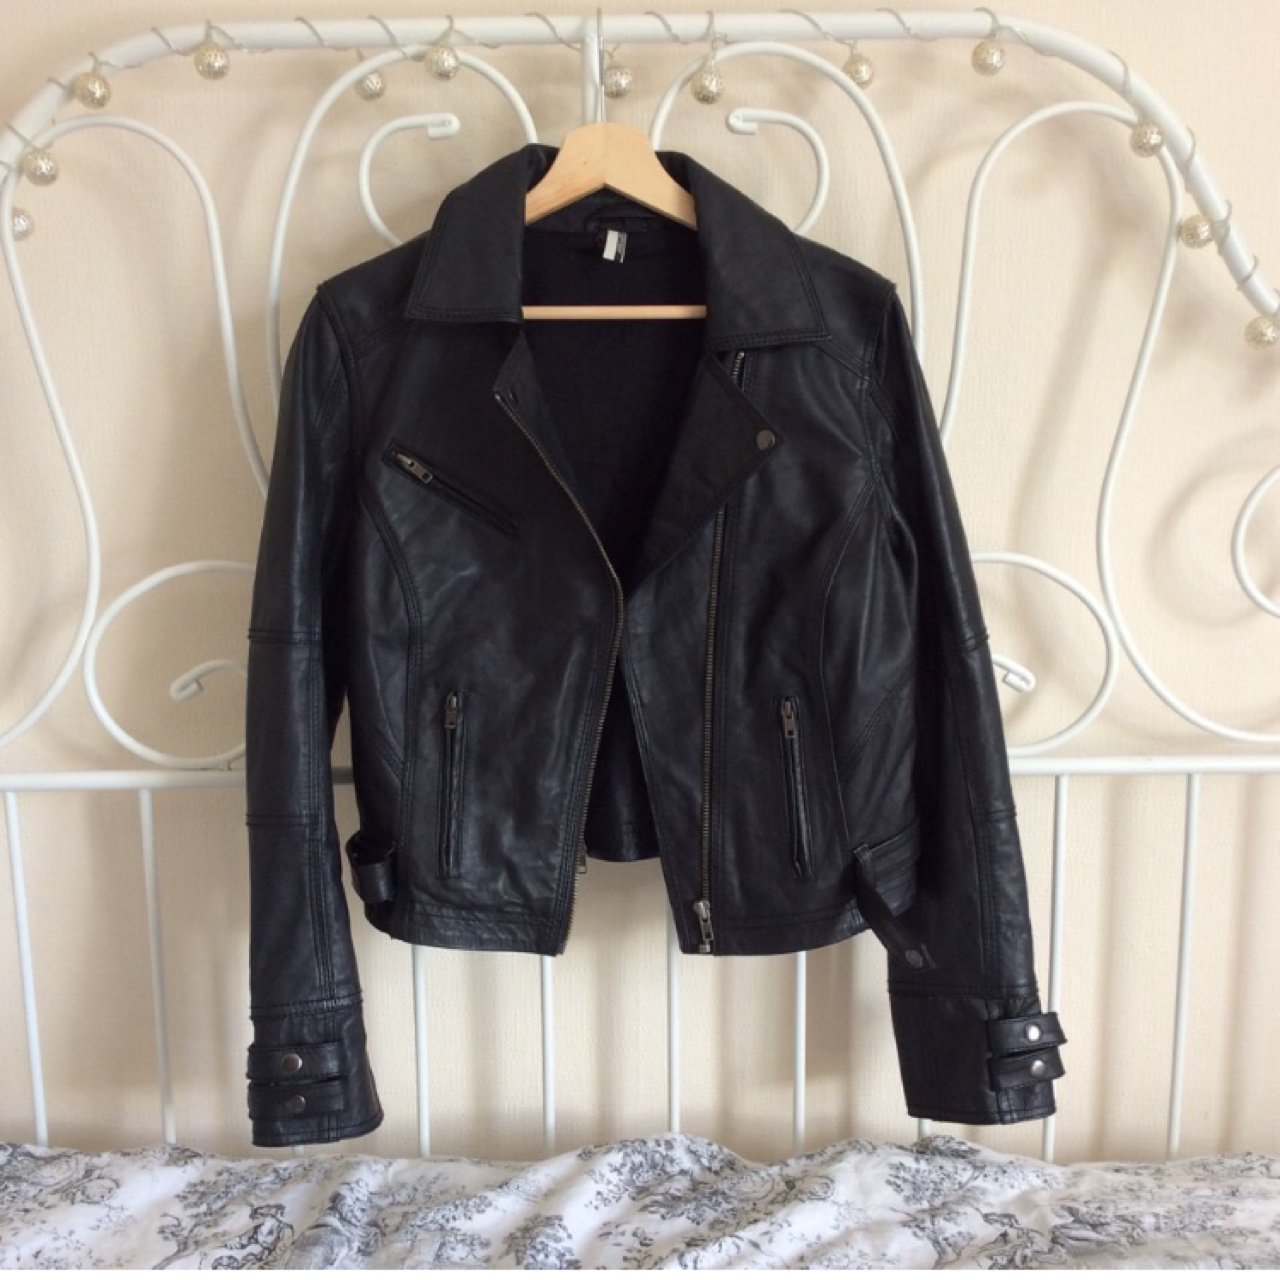 f8d85dba159 Topshop 100% real leather biker jacket RRP £165